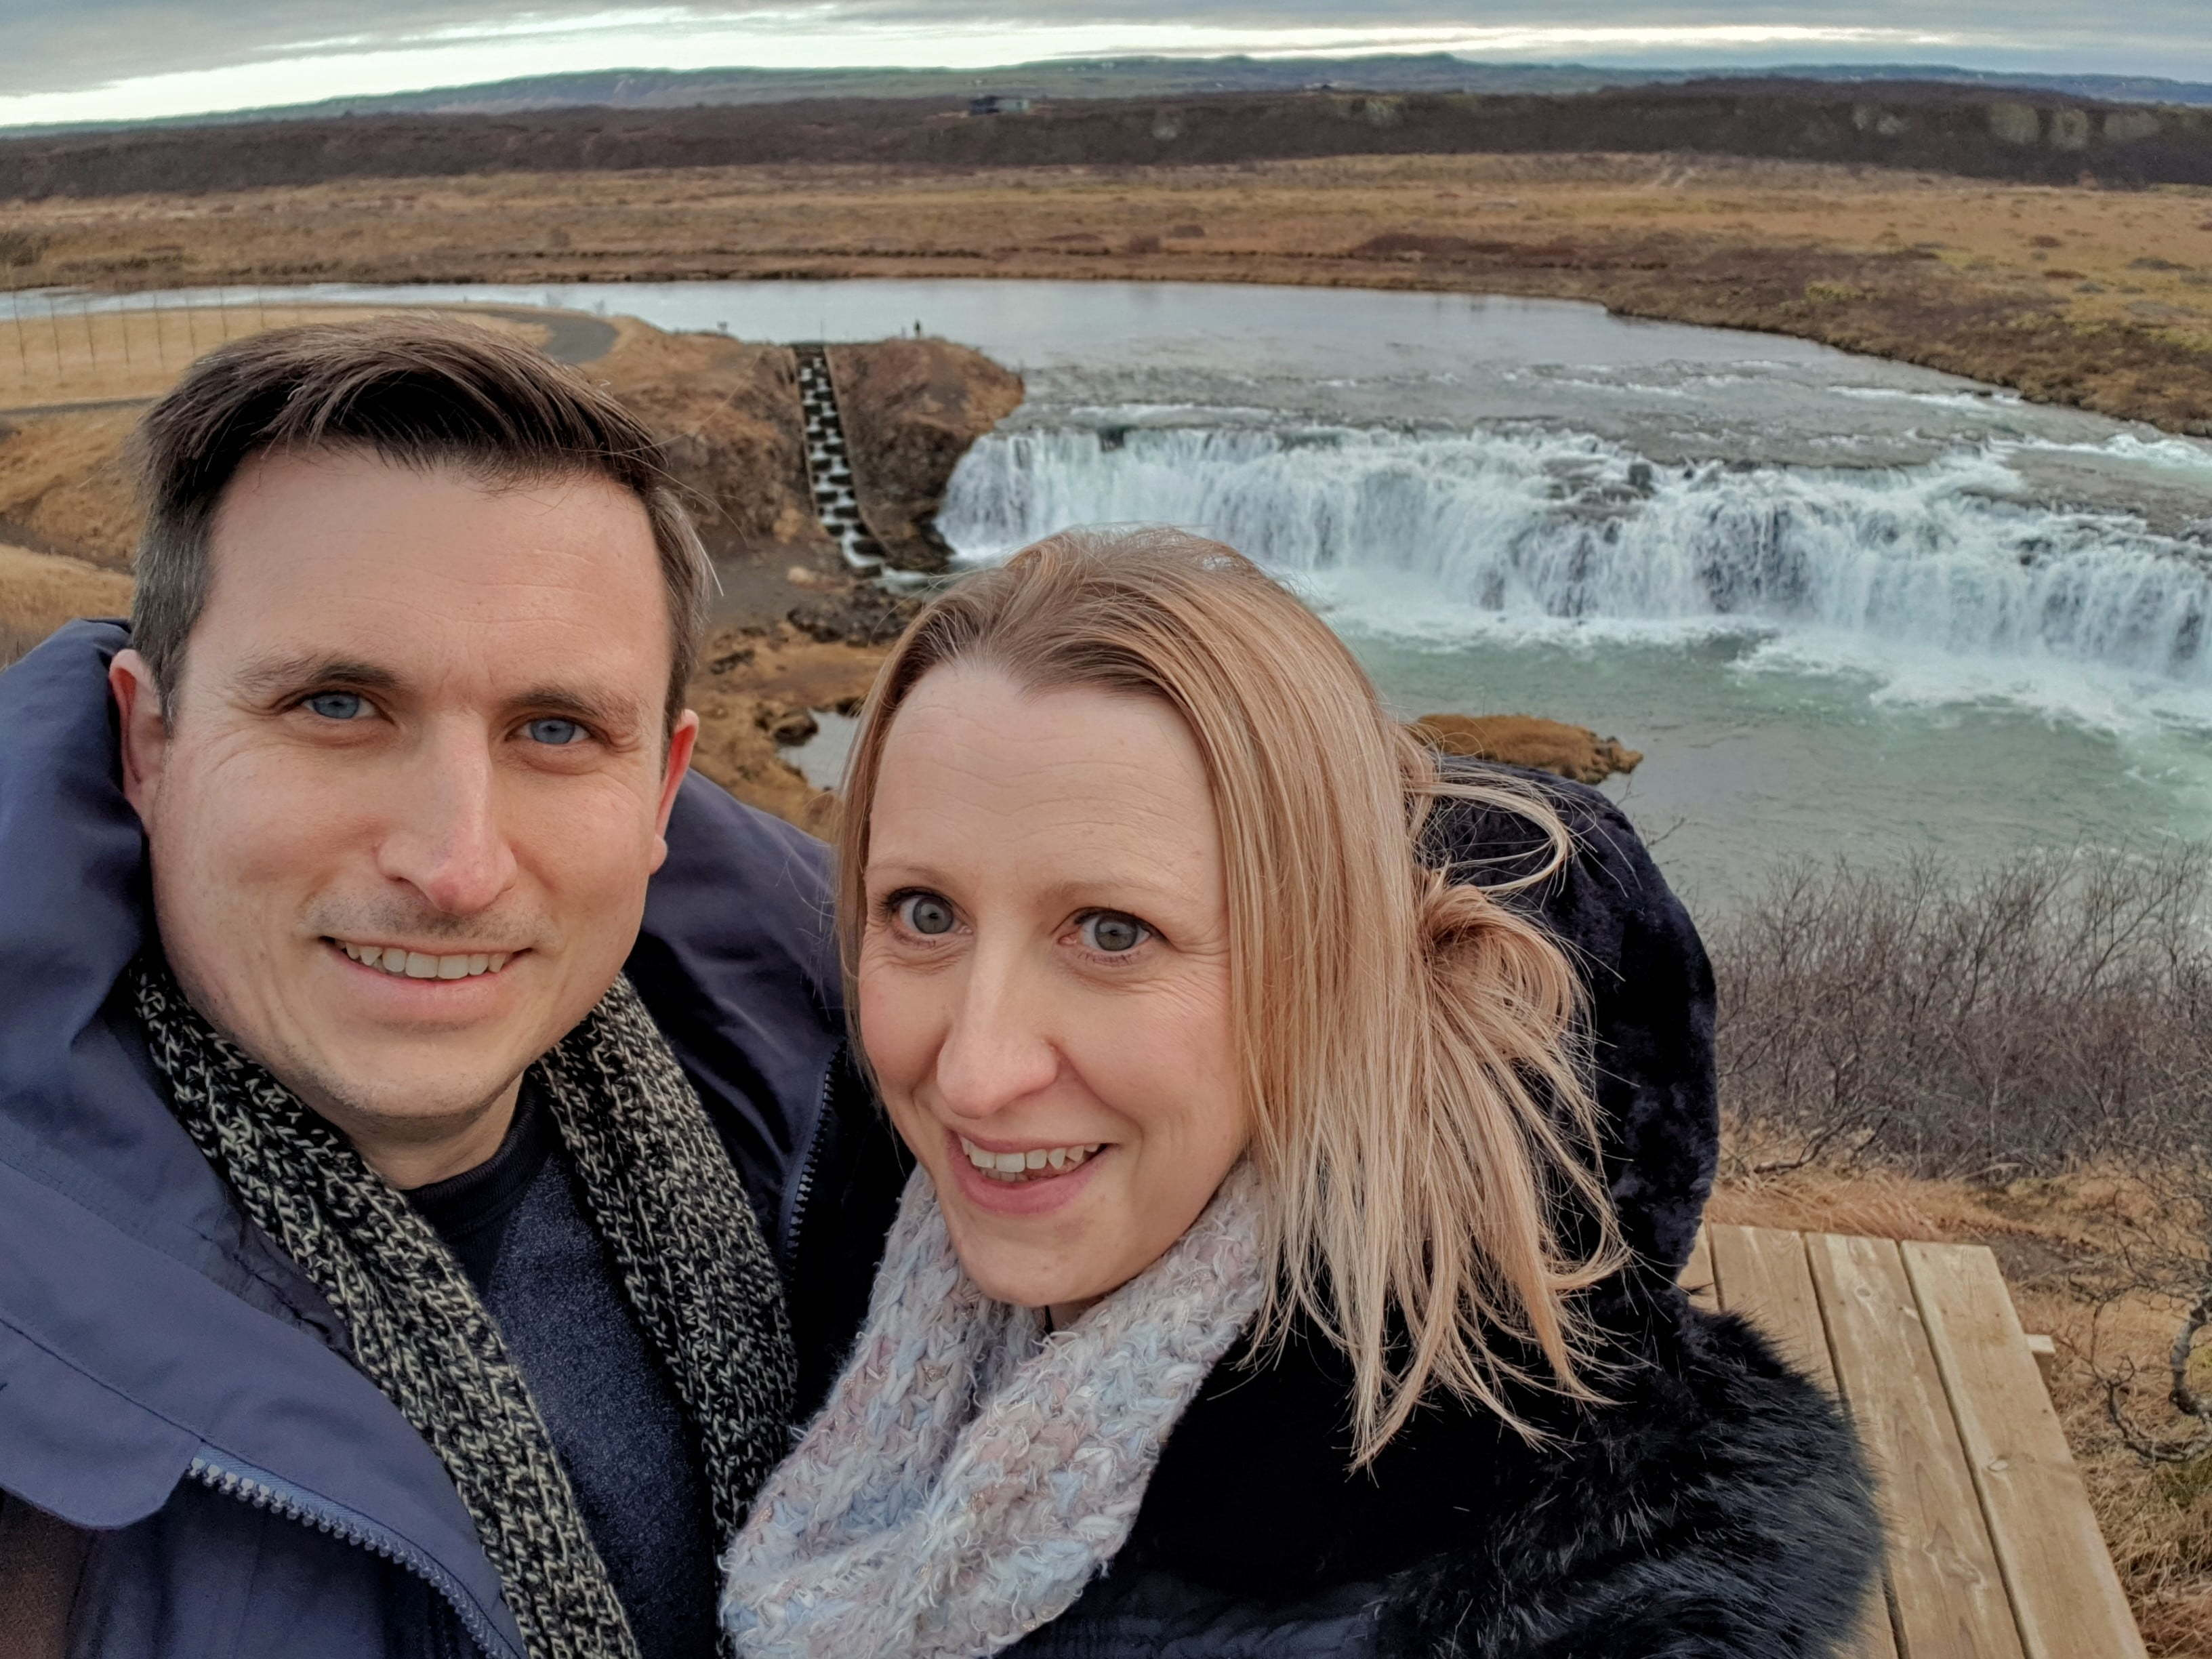 Come back soon for the second part of our Iceland adventures!